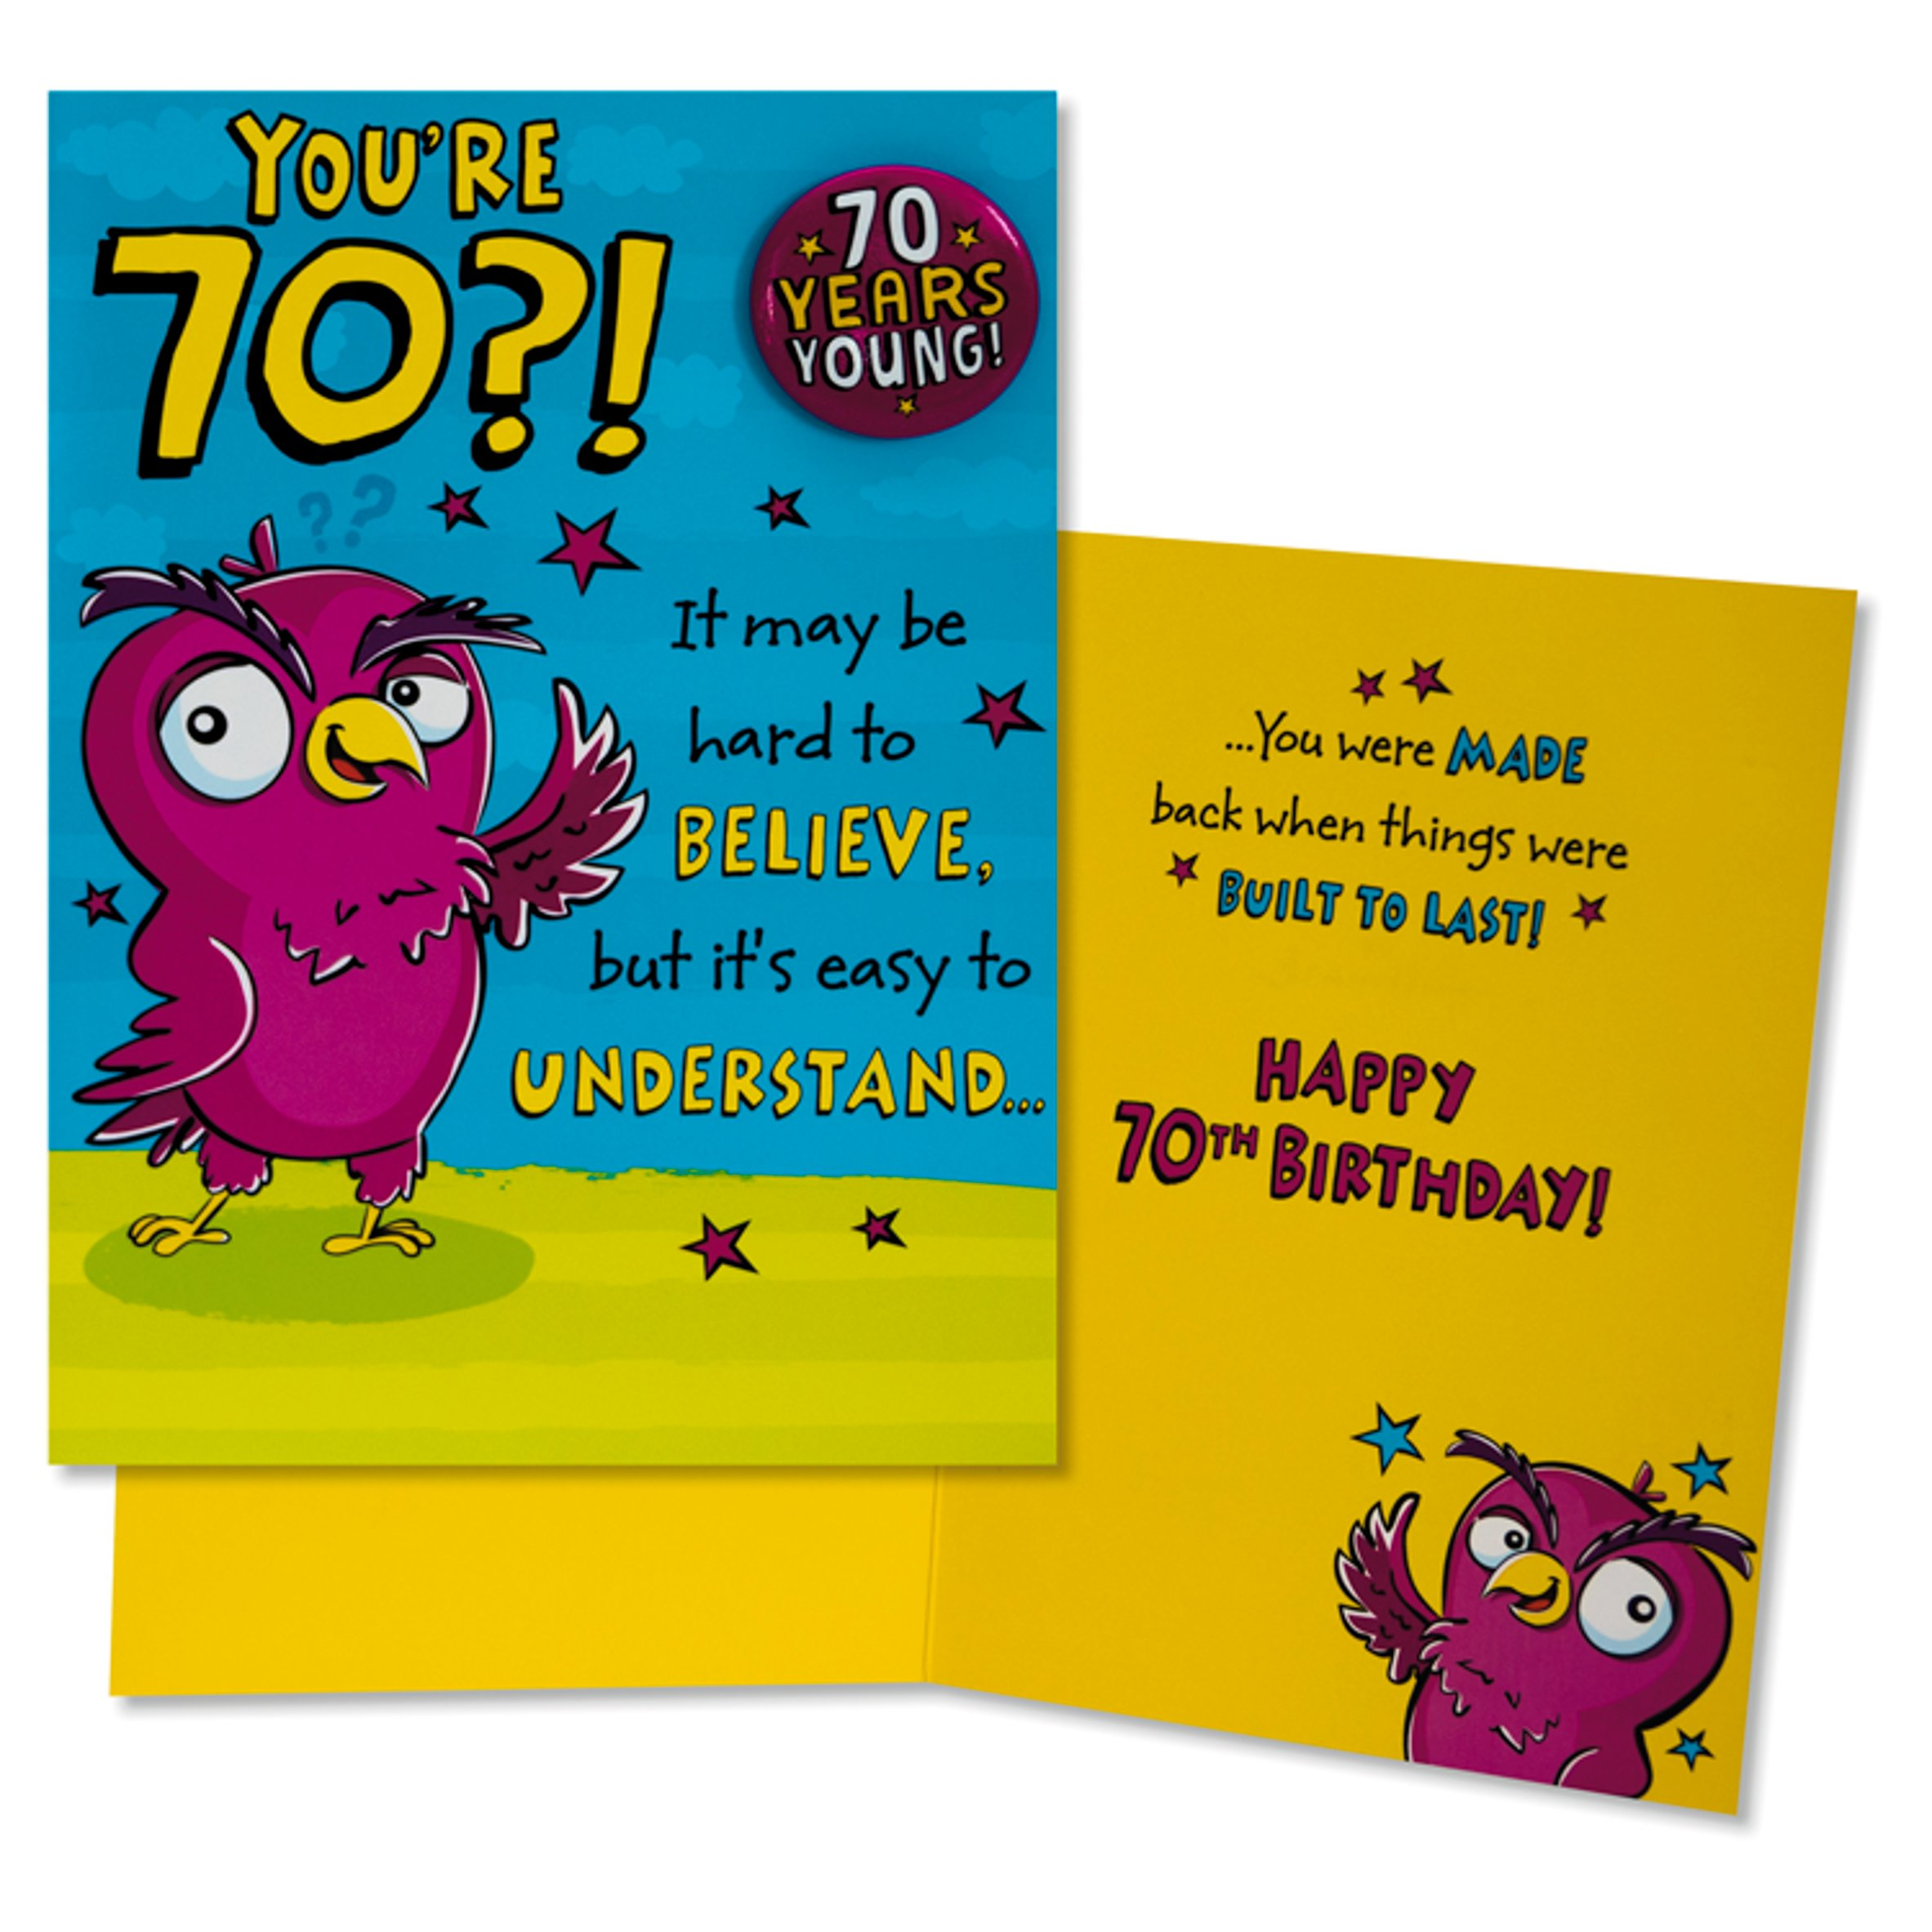 Age 70th Birthday Hallmark Card With Badge 70 Years Young /'You/'re 70/'! Medium